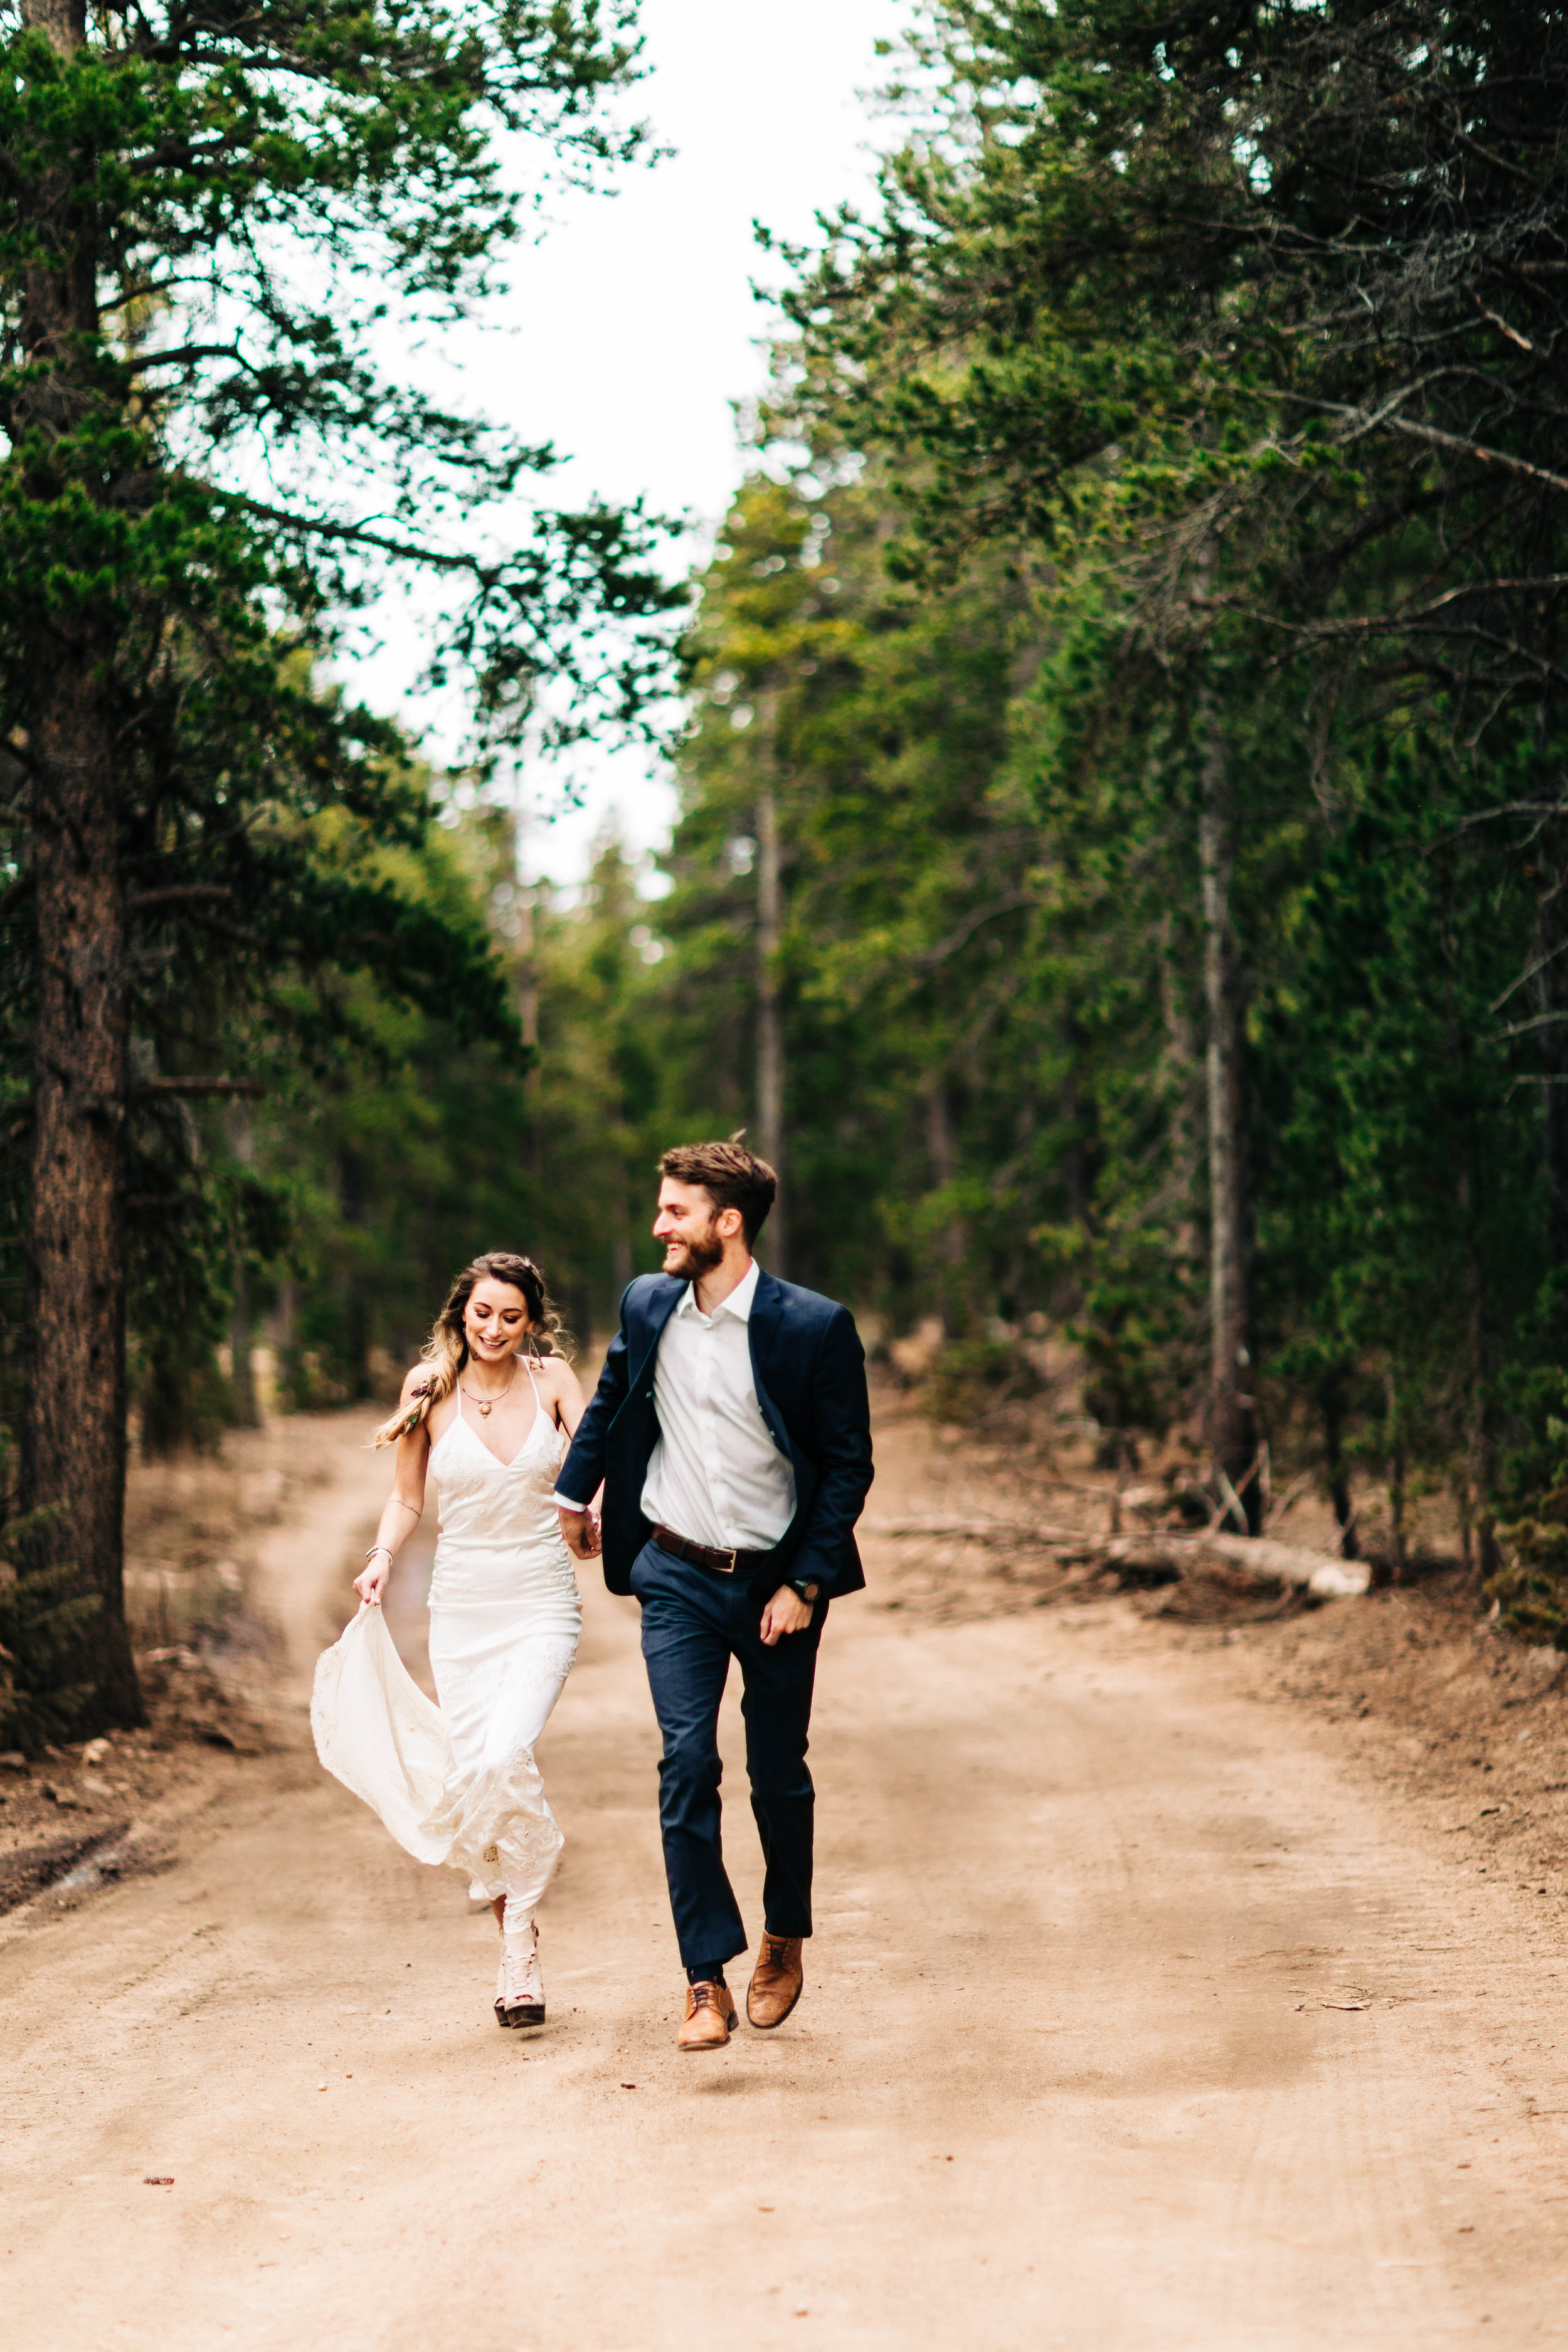 Colorado couple running through the mountains on their elopement day | Rocky Mountain elopement photography